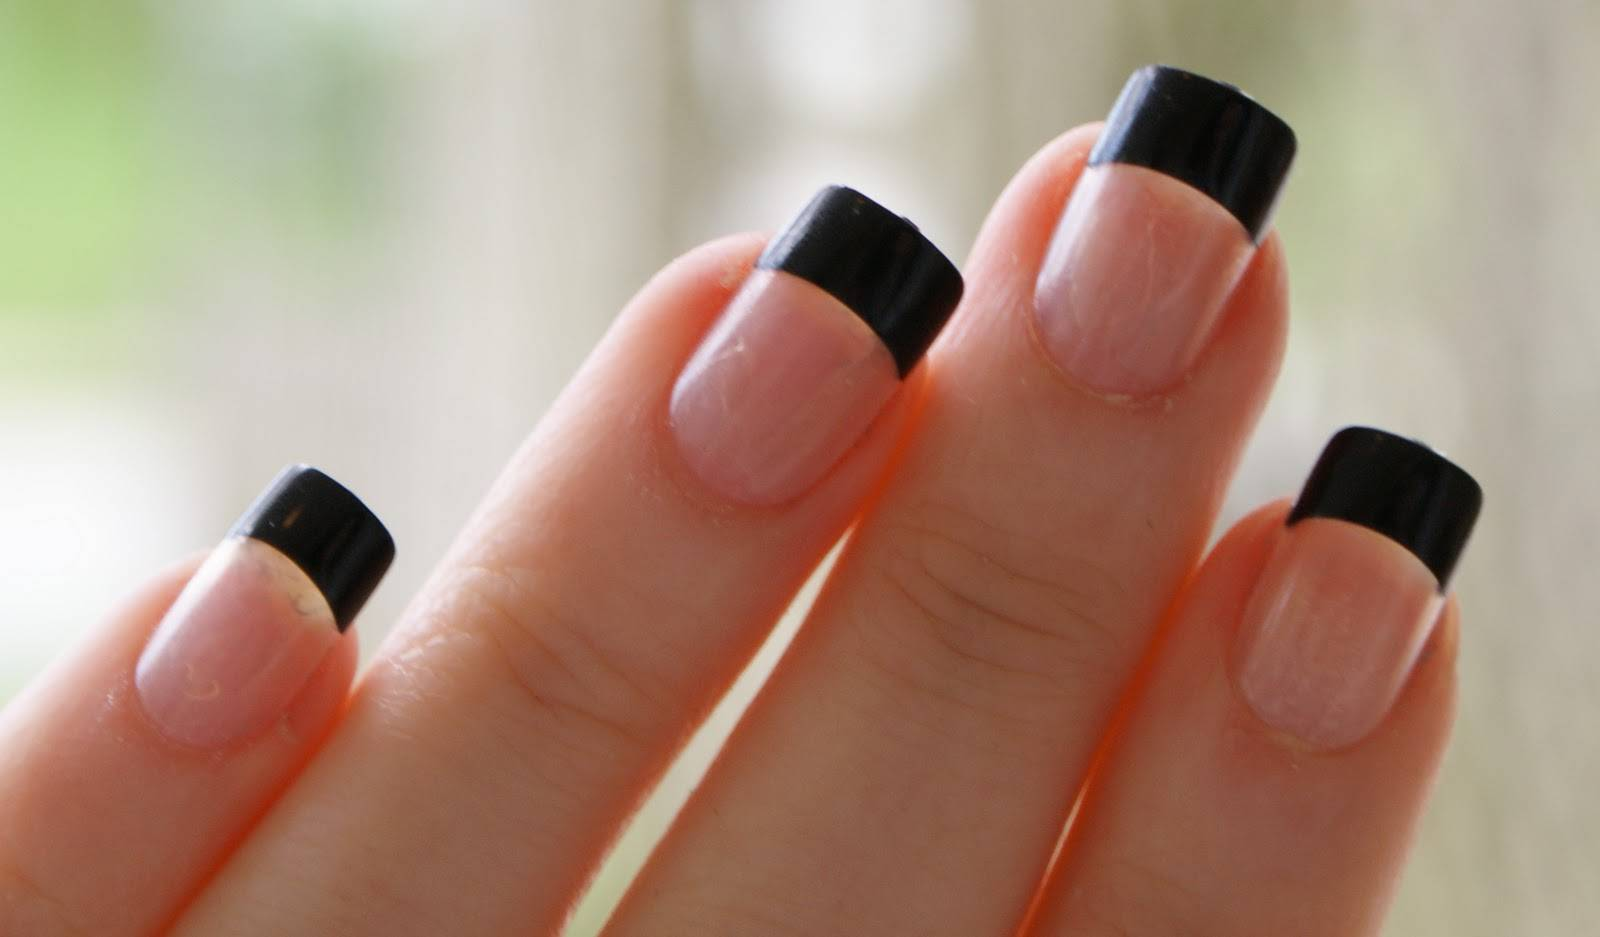 17 Black Nails With Design Images